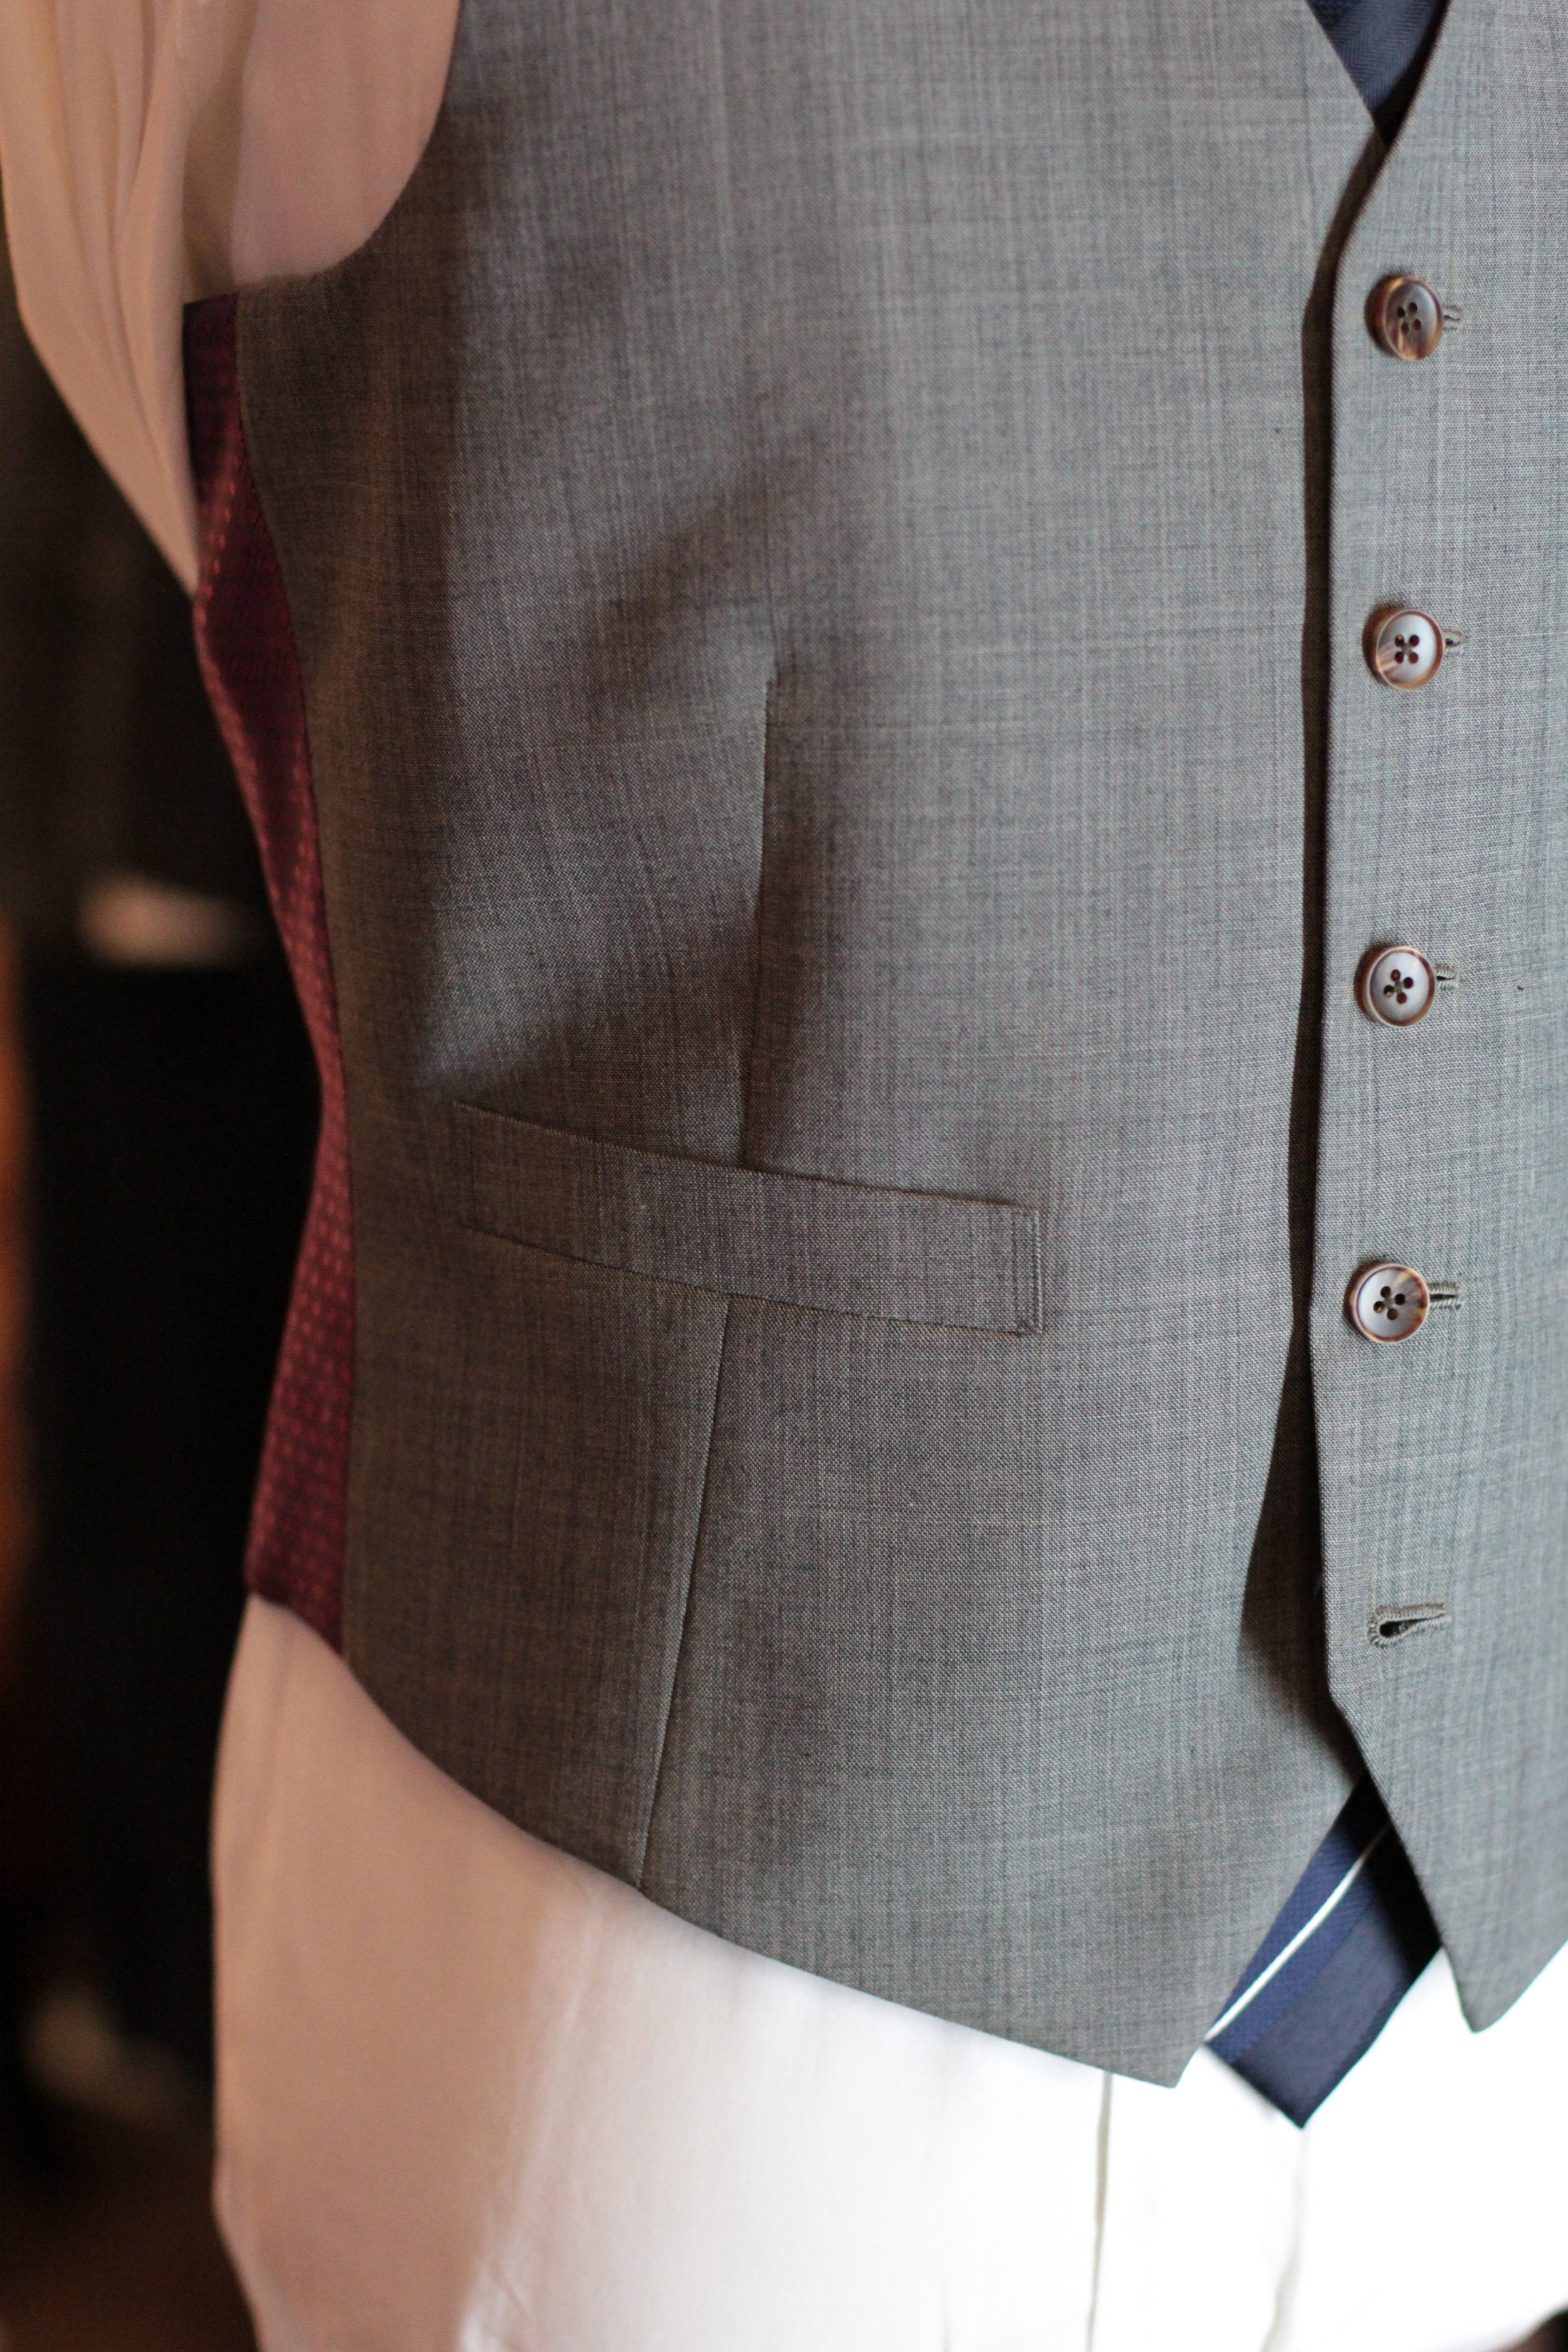 Jetted Pocket Mr Specter Waistcoat   vest   Made Suits   tailor made suits   Singapore tailor   bespoke   tailored suit copy.JPG